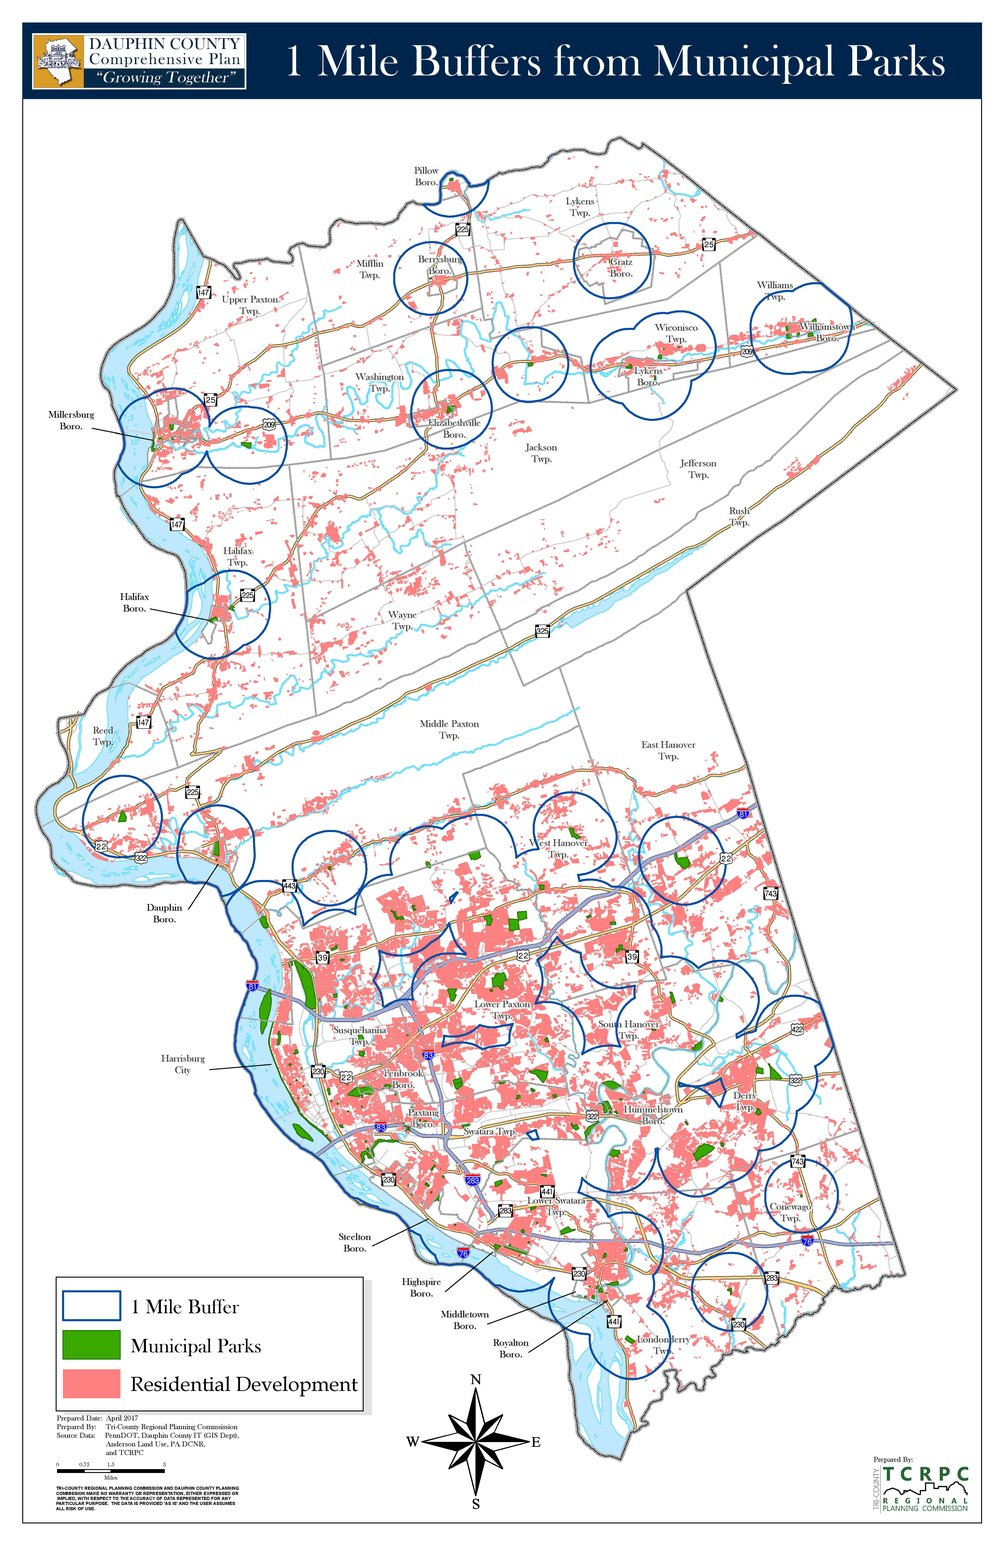 Parks & Residential Development Click for map (PDF)